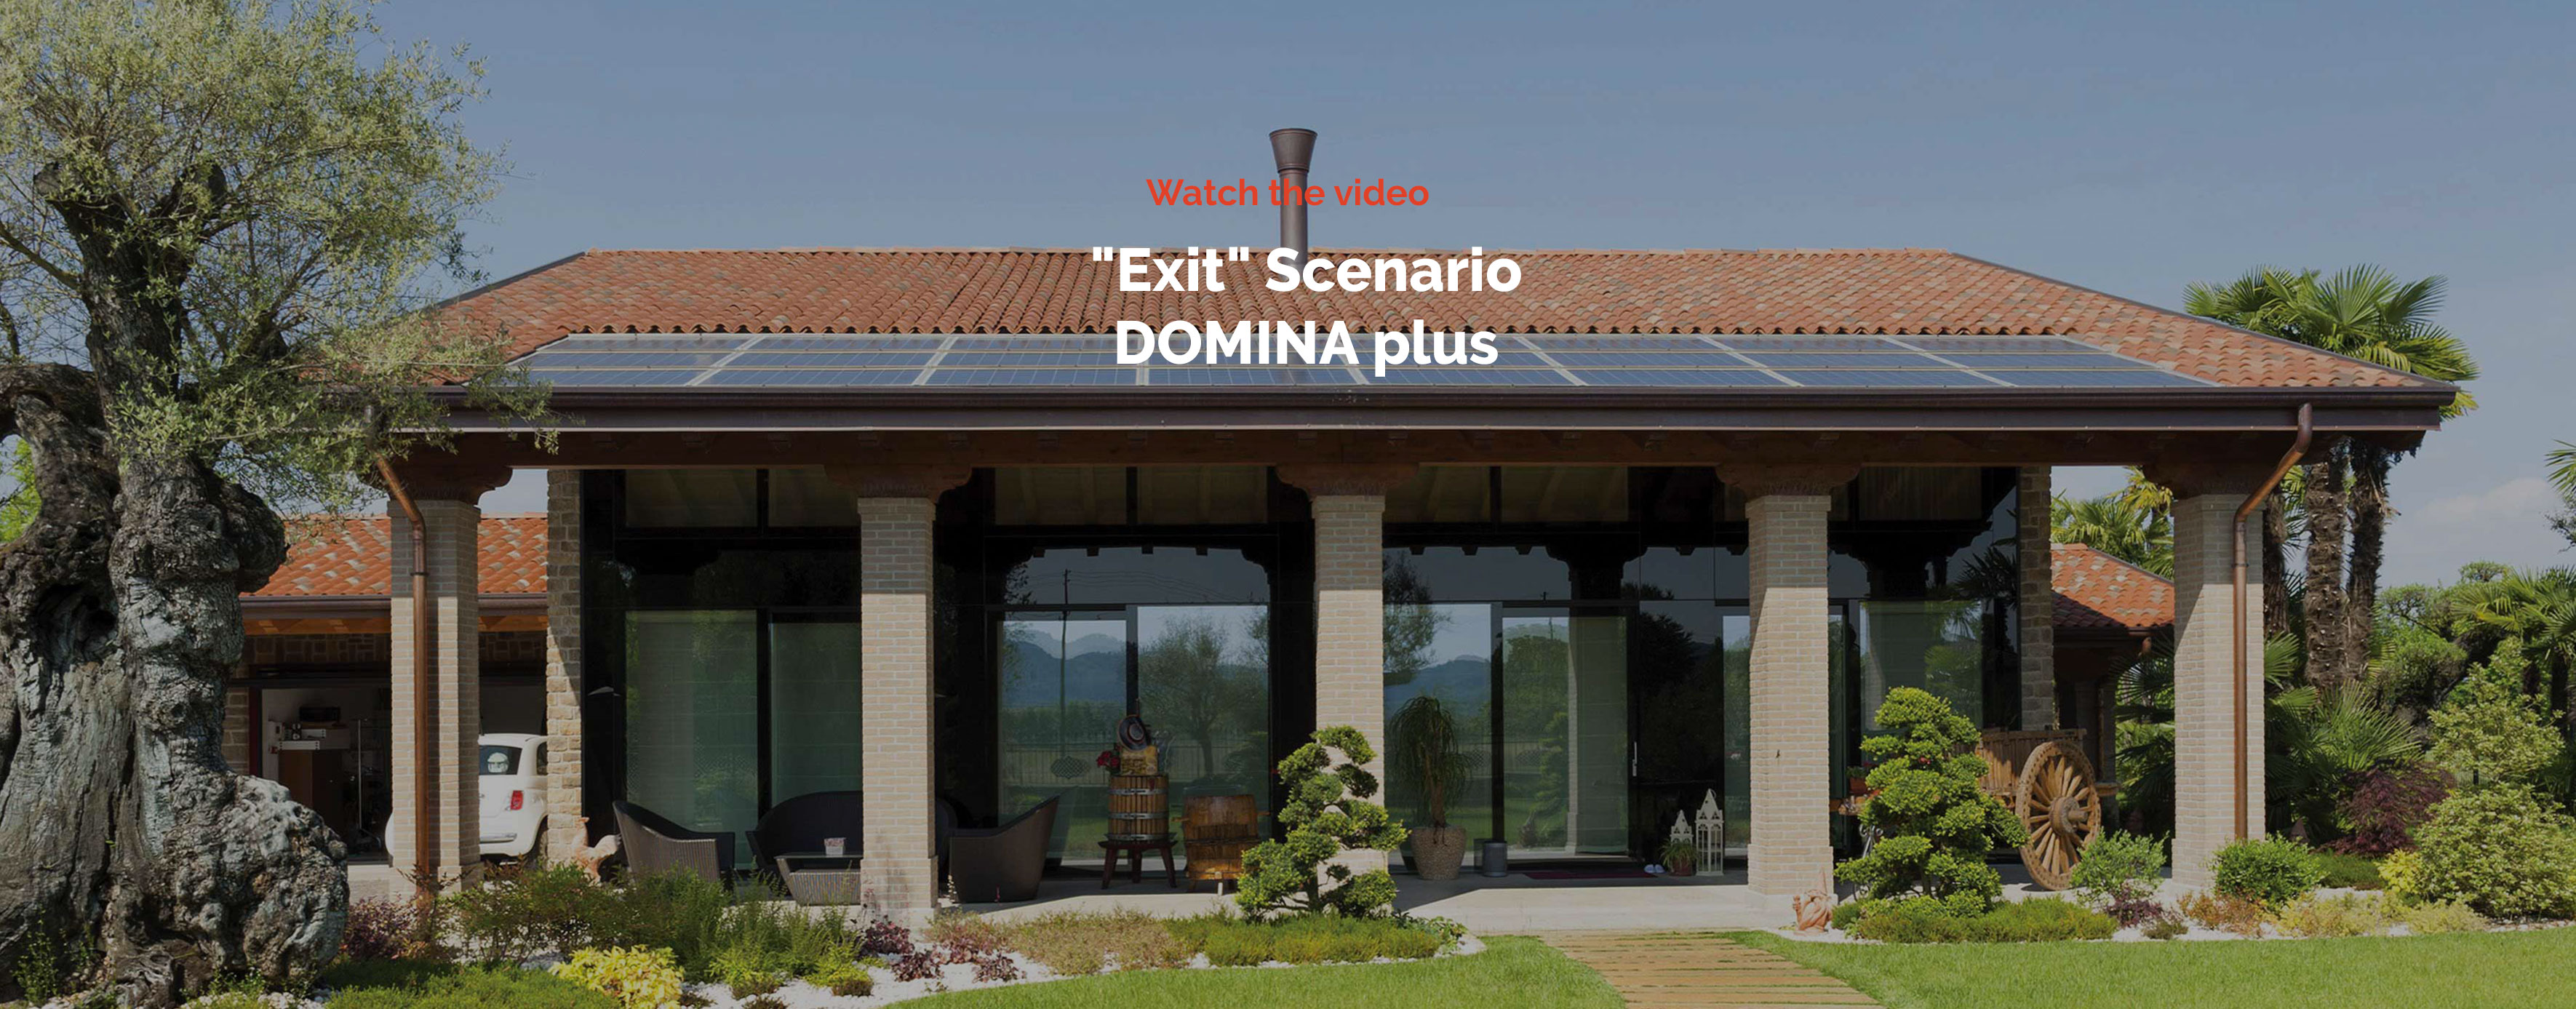 "Home automation AVE DOMINA plus – Domotic Scenario ""Output"" video"